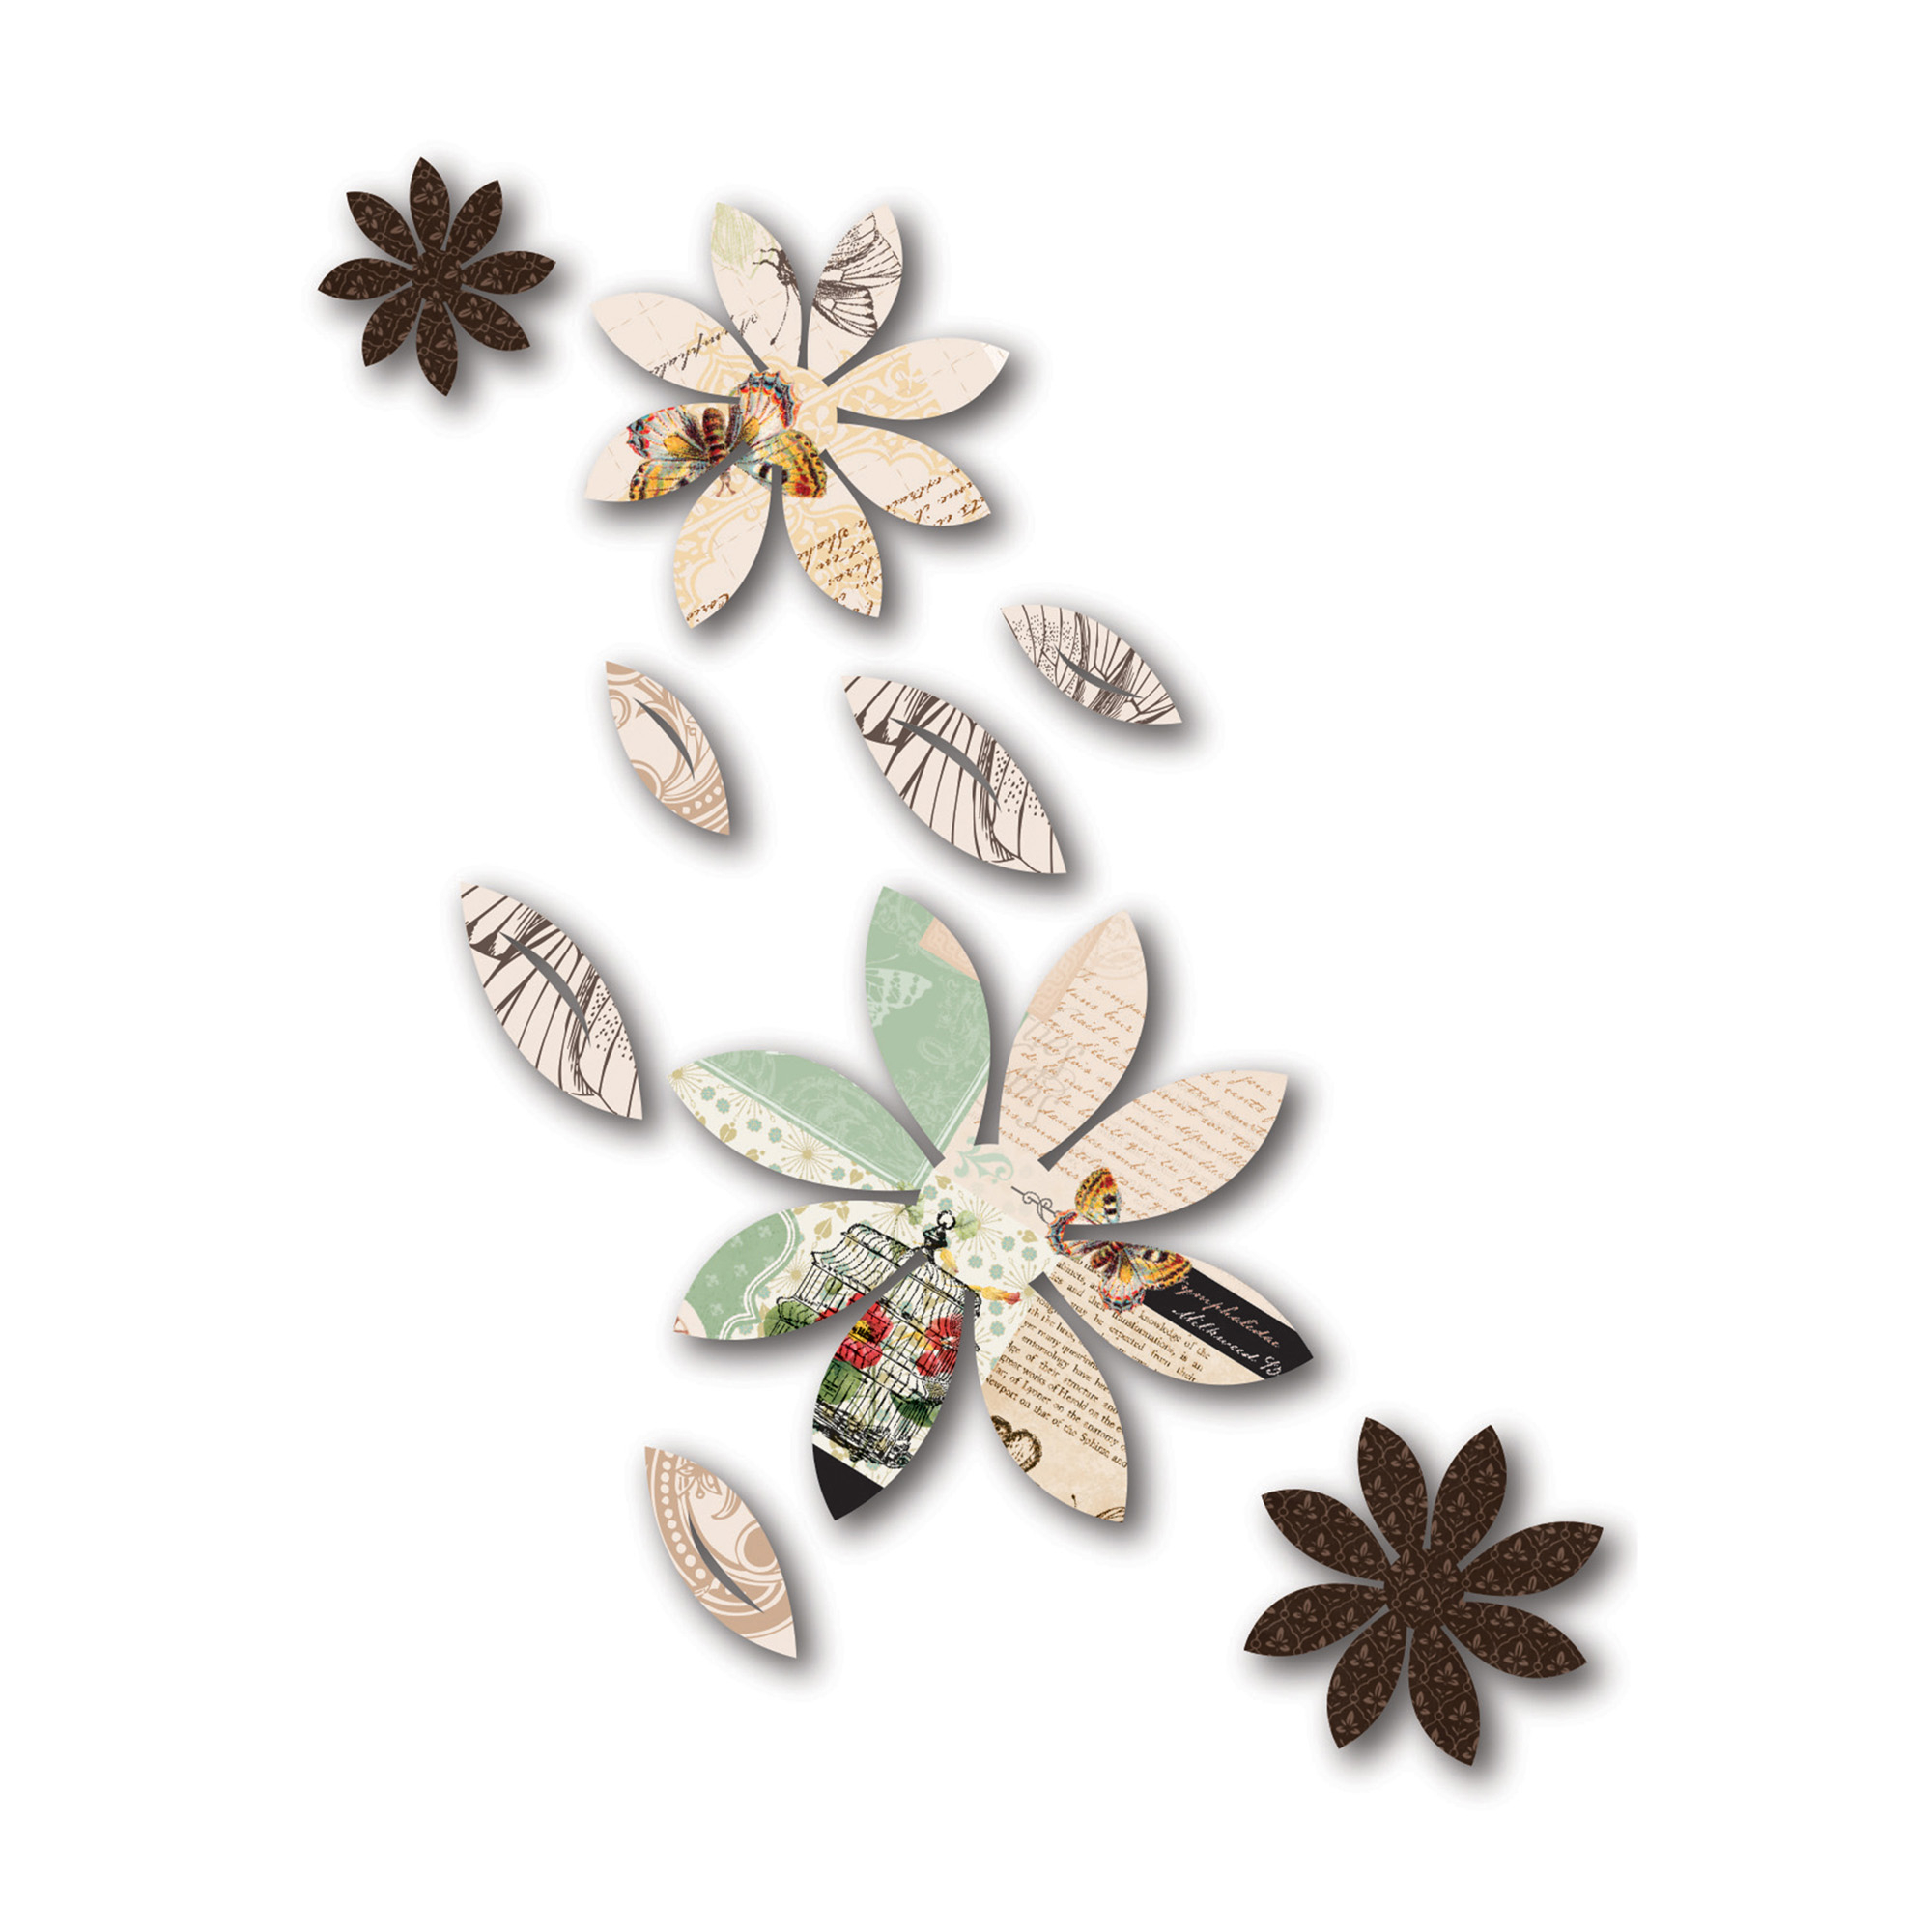 3D Wall Decor Brown Flowers With Mariposa Print, 9-Piece - Walmart with regard to Trendy Mariposa 9 Piece Wall Decor